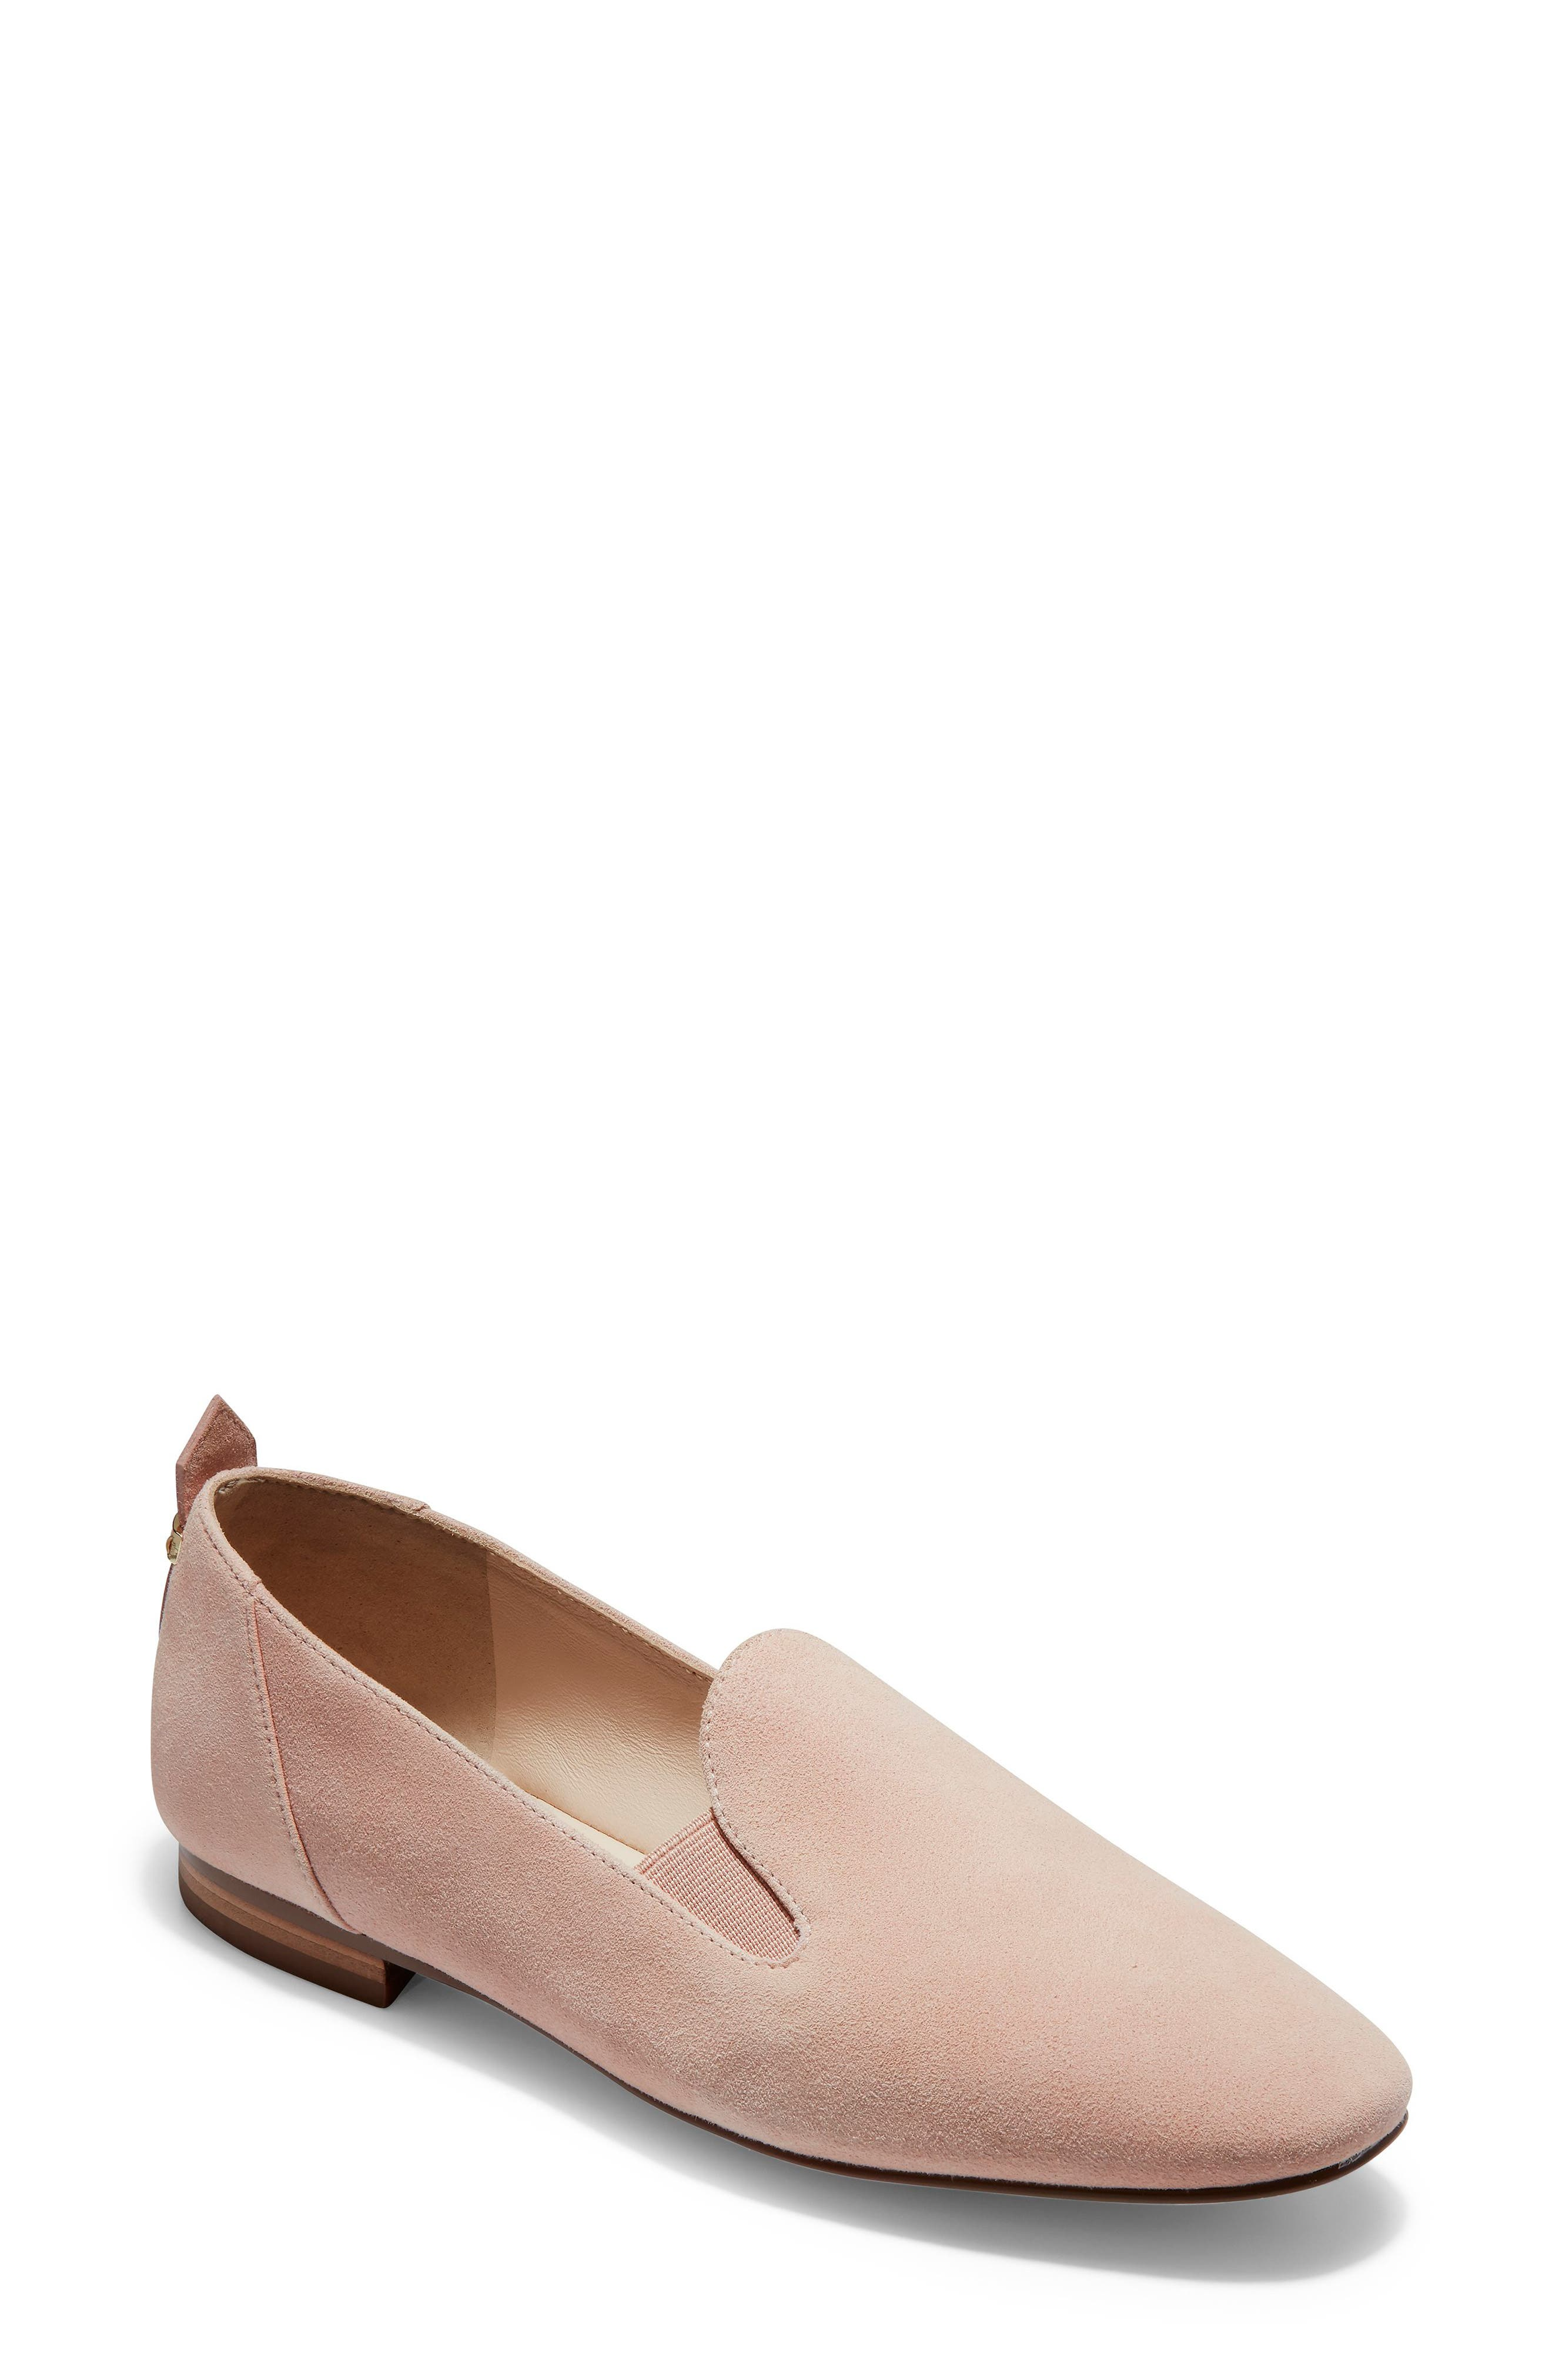 Cole Haan Portia Loafer B - Pink